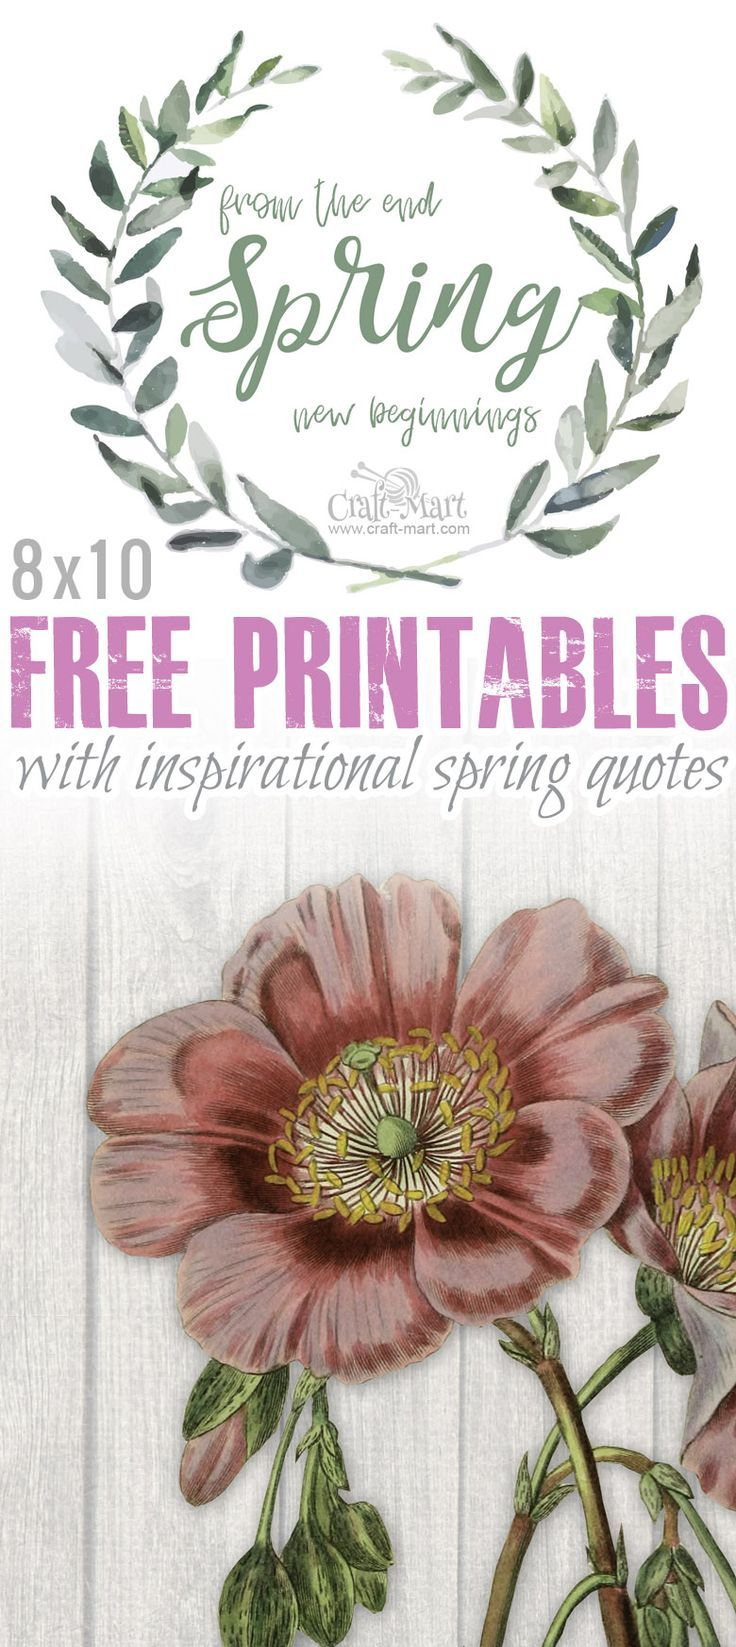 Free Printables With Inspirational Spring Quotes And Sayings With